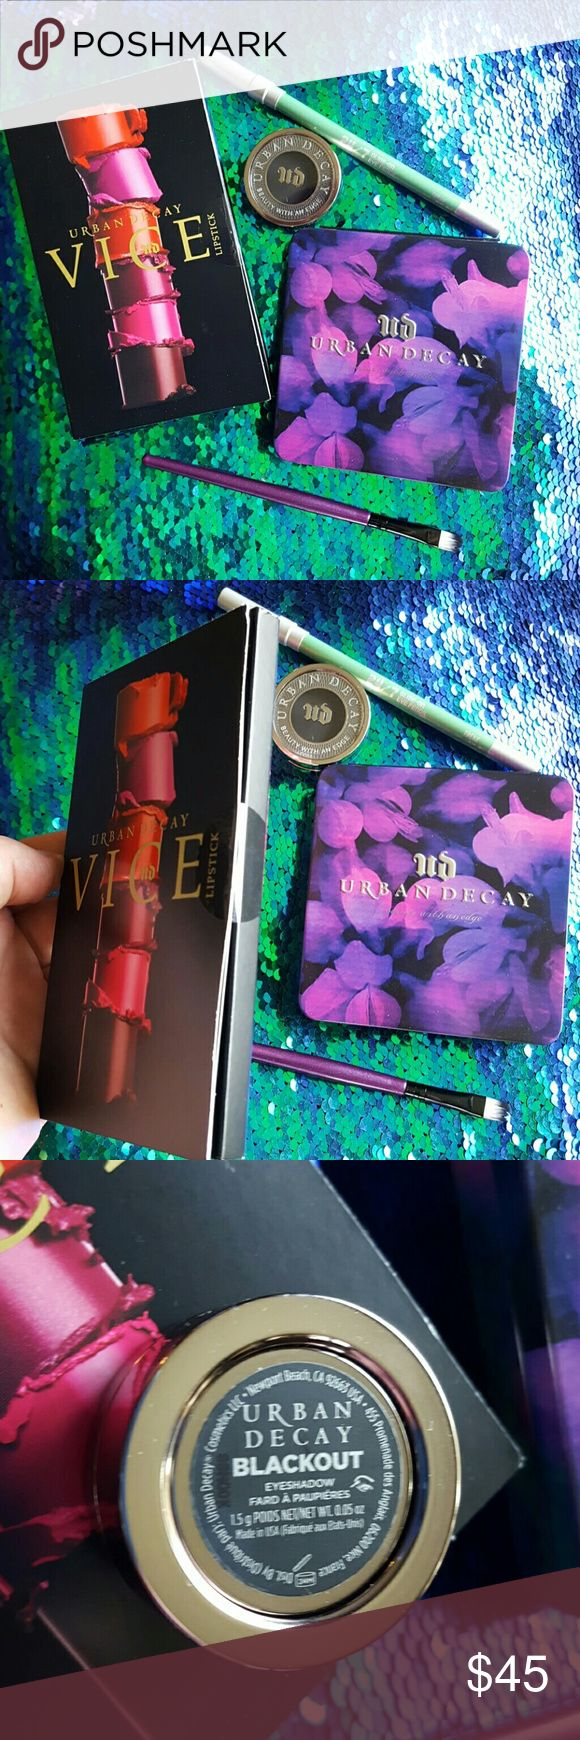 Urban Decay bundle WITH Bonus makeup bag! 1 empty Urban Decay singles palette 1 Urban Decay eyeshadow in Blackout (only swatched) 1 Urban Decay eyeliner in Freak (never used, but I bumped the tip taking off the cap for this photo x.x ) 1 Brand new never opened Vice Lipstick 24 color sampler 1 eyeshadow brush ALL WRAPPED UP IN AN URBAN DECAY COSMETICS BAG! Great starter pack! Lol Urban Decay Makeup